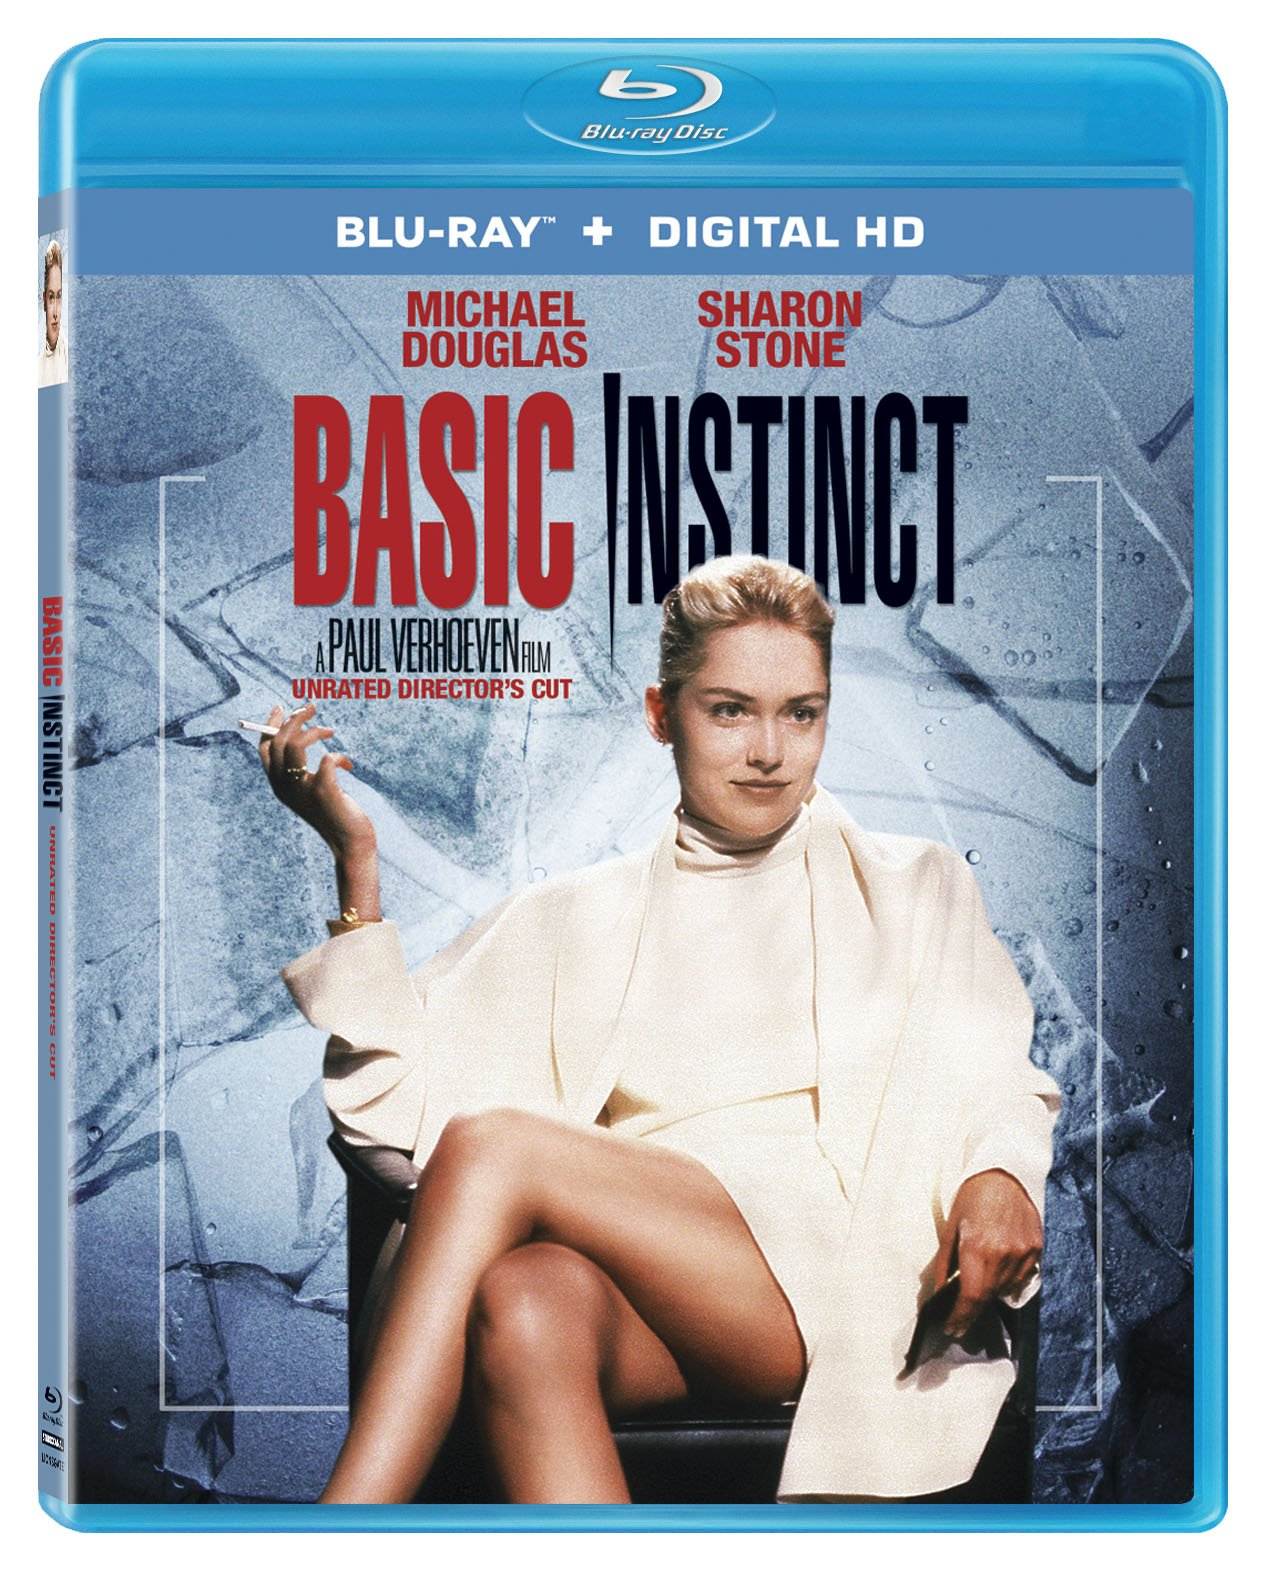 Blu-ray : Basic Instinct (Ultraviolet Digital Copy)